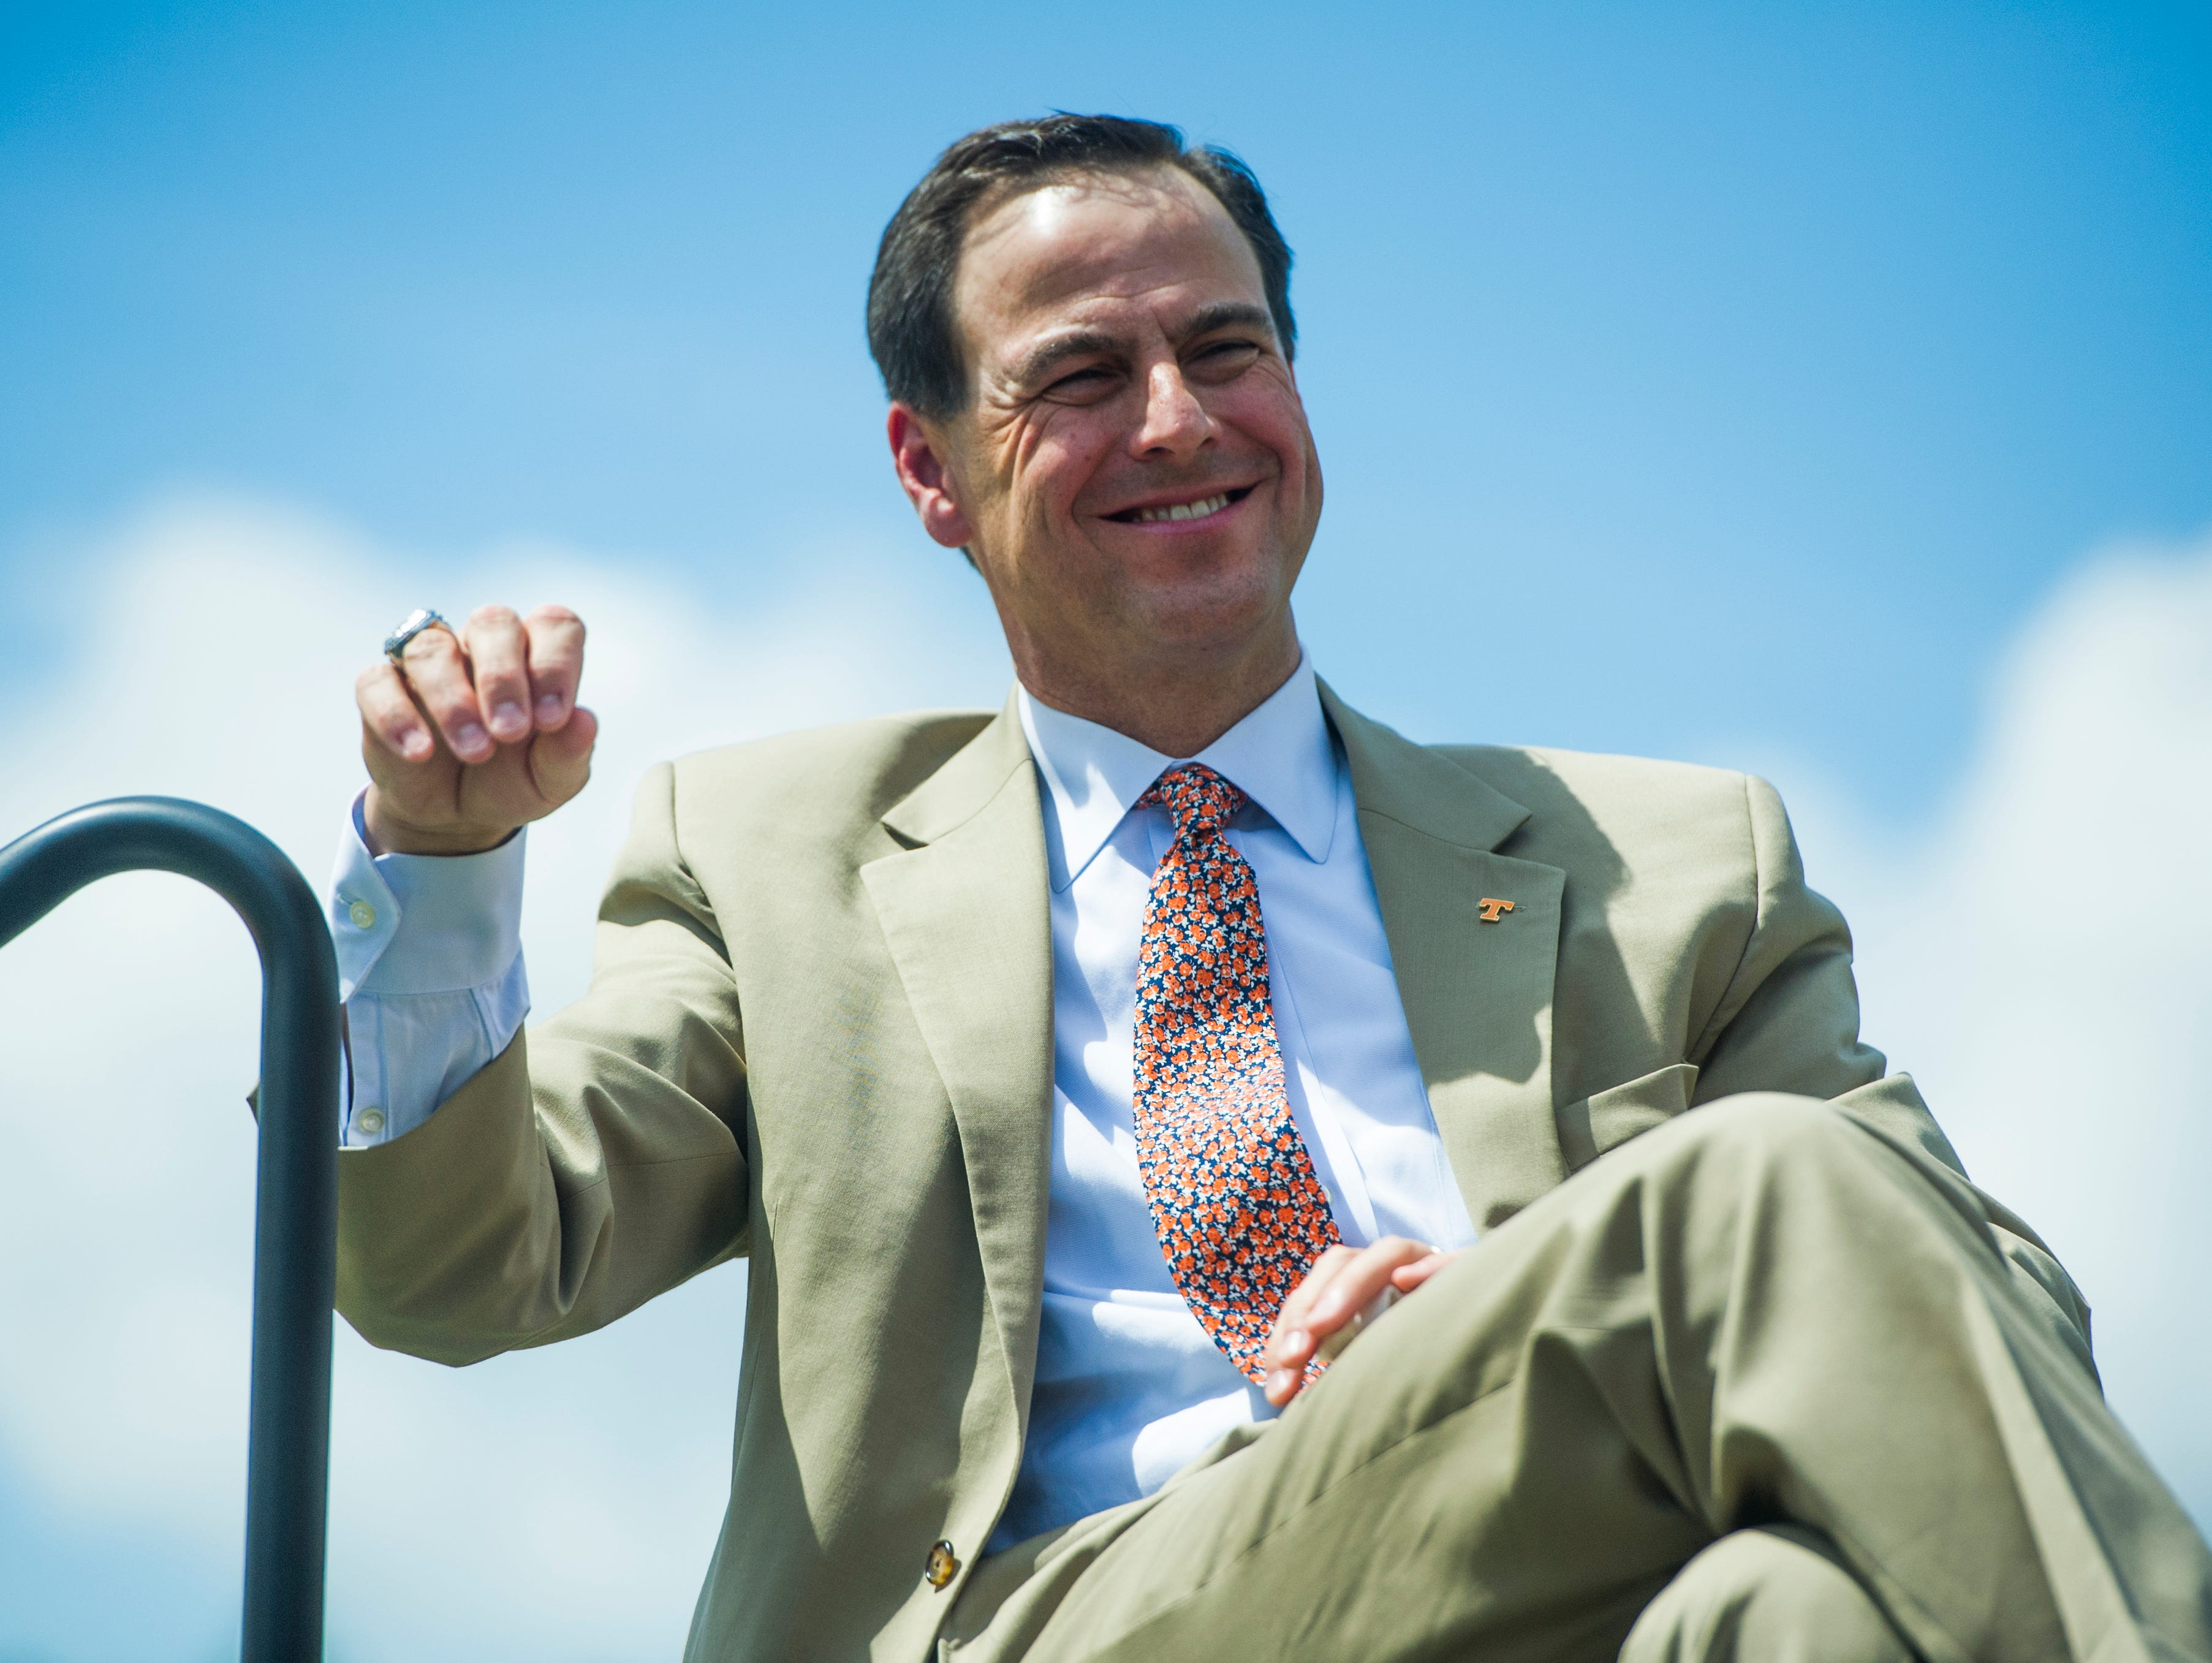 John Currie, Tennessee vice chancellor and director of athletics during a press conference introducing new University of Tennessee Baseball Head Coach Tony Vitello to the media, at Lindsey Nelson Stadium on Friday June 9, 2017.